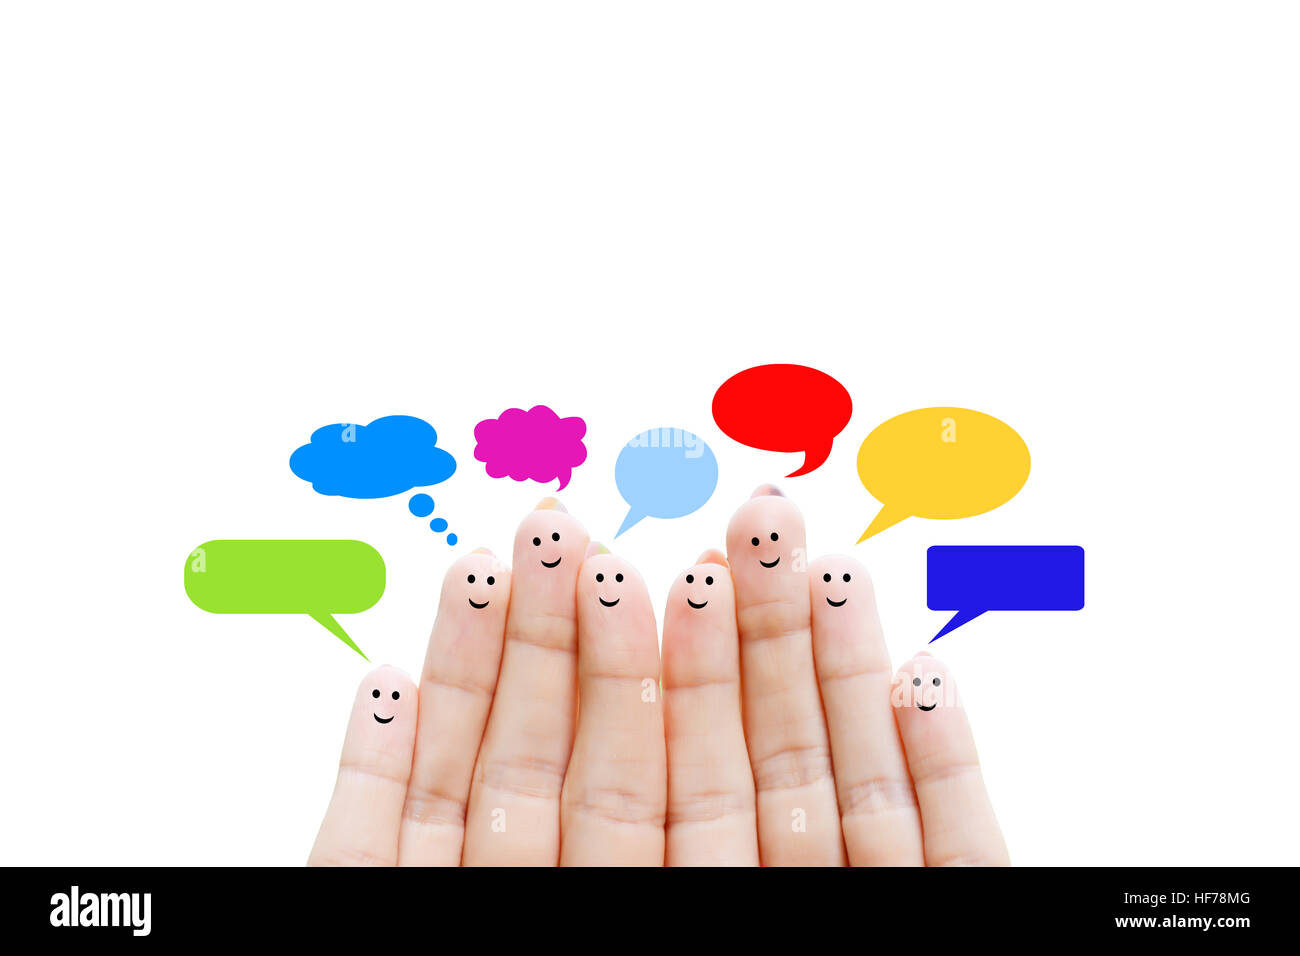 Happy human fingers suggesting feedback and communication concept - Stock Image